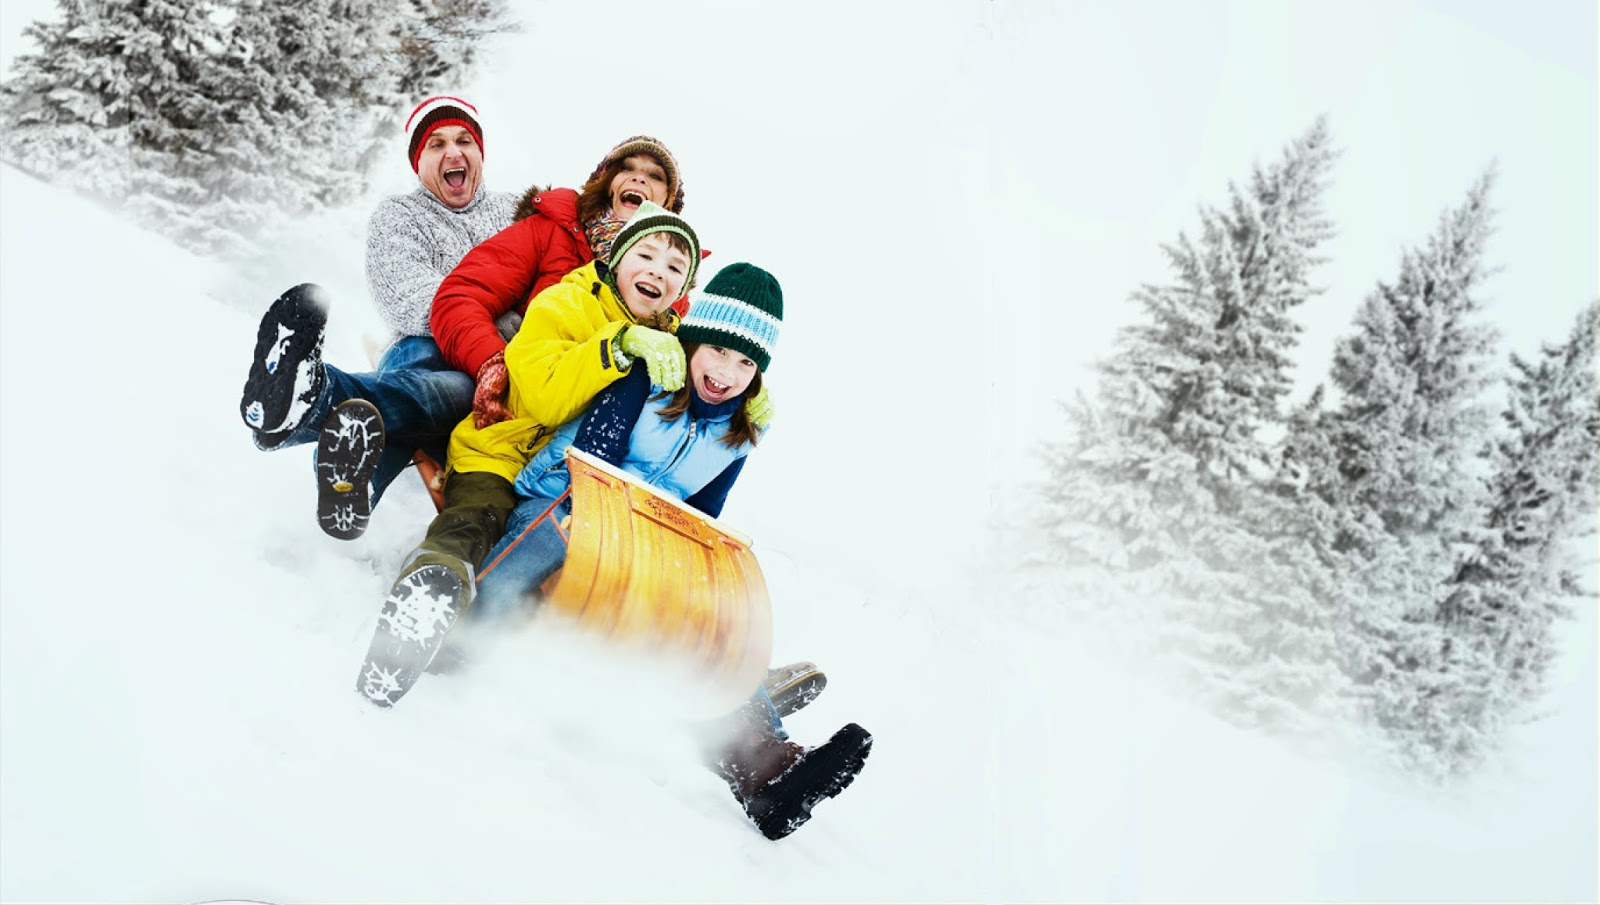 5 Ideas For Outdoor Family Outings On The Cheap